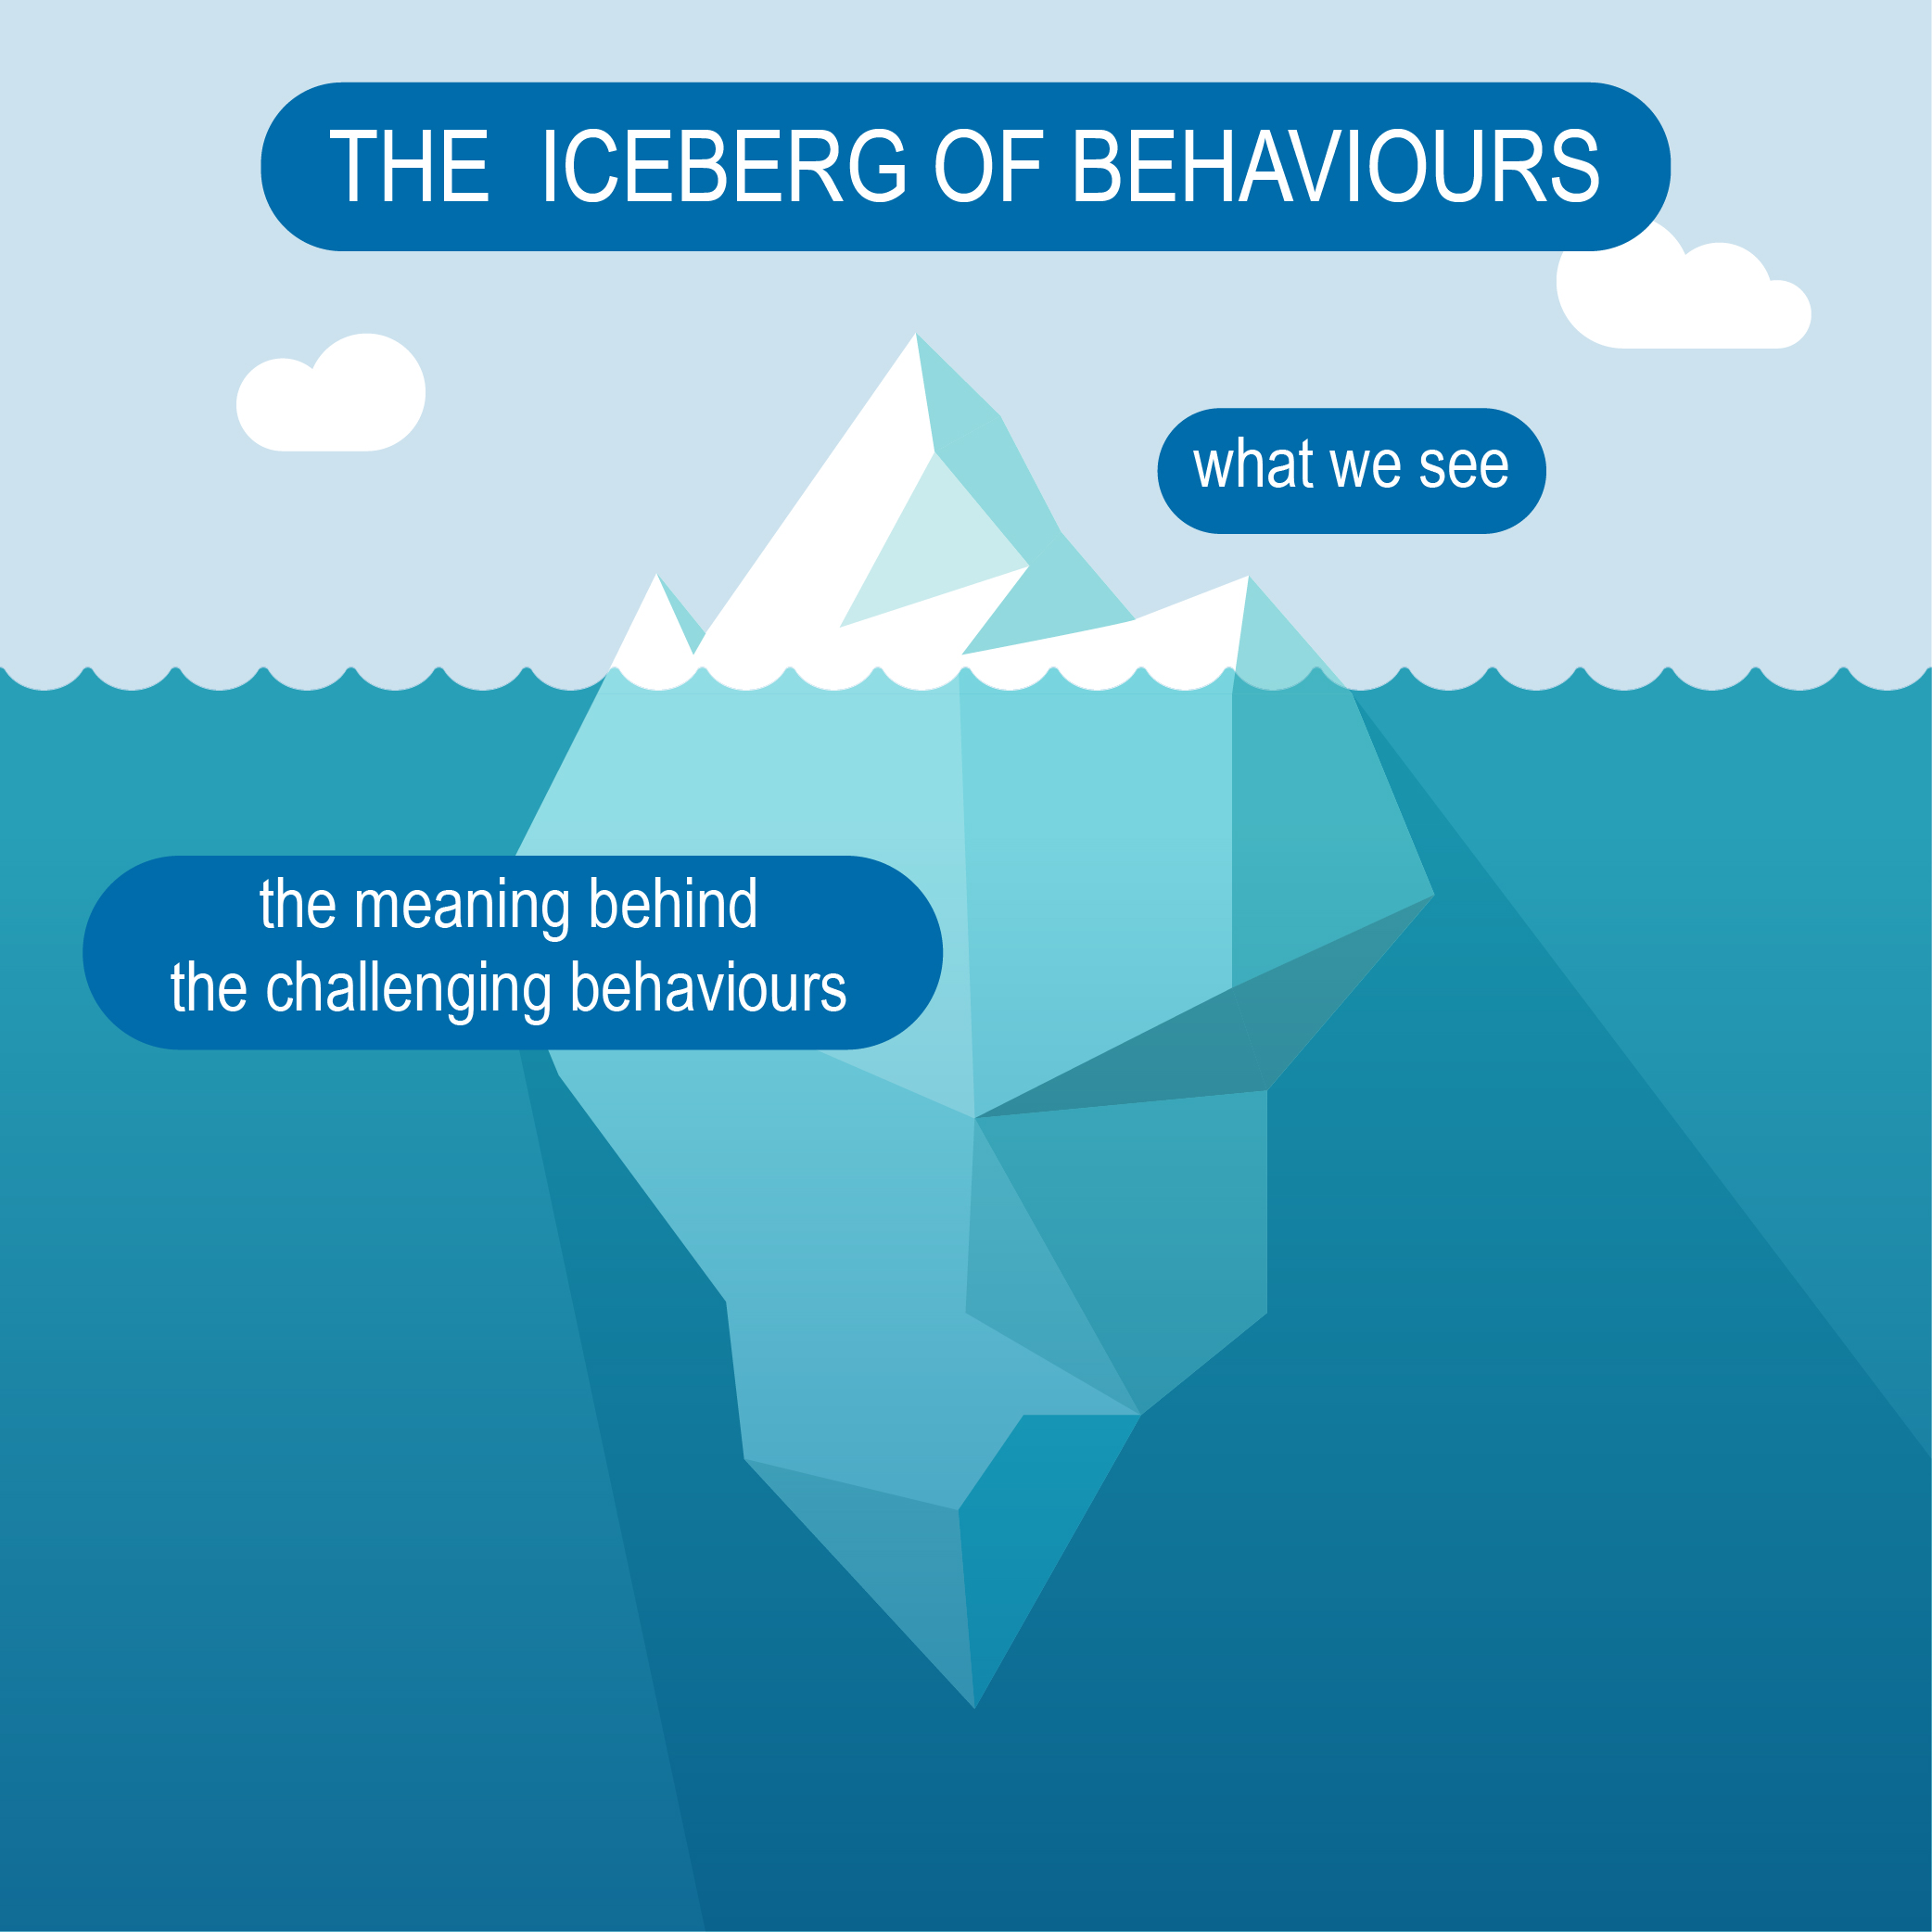 The iceberg of behaviours